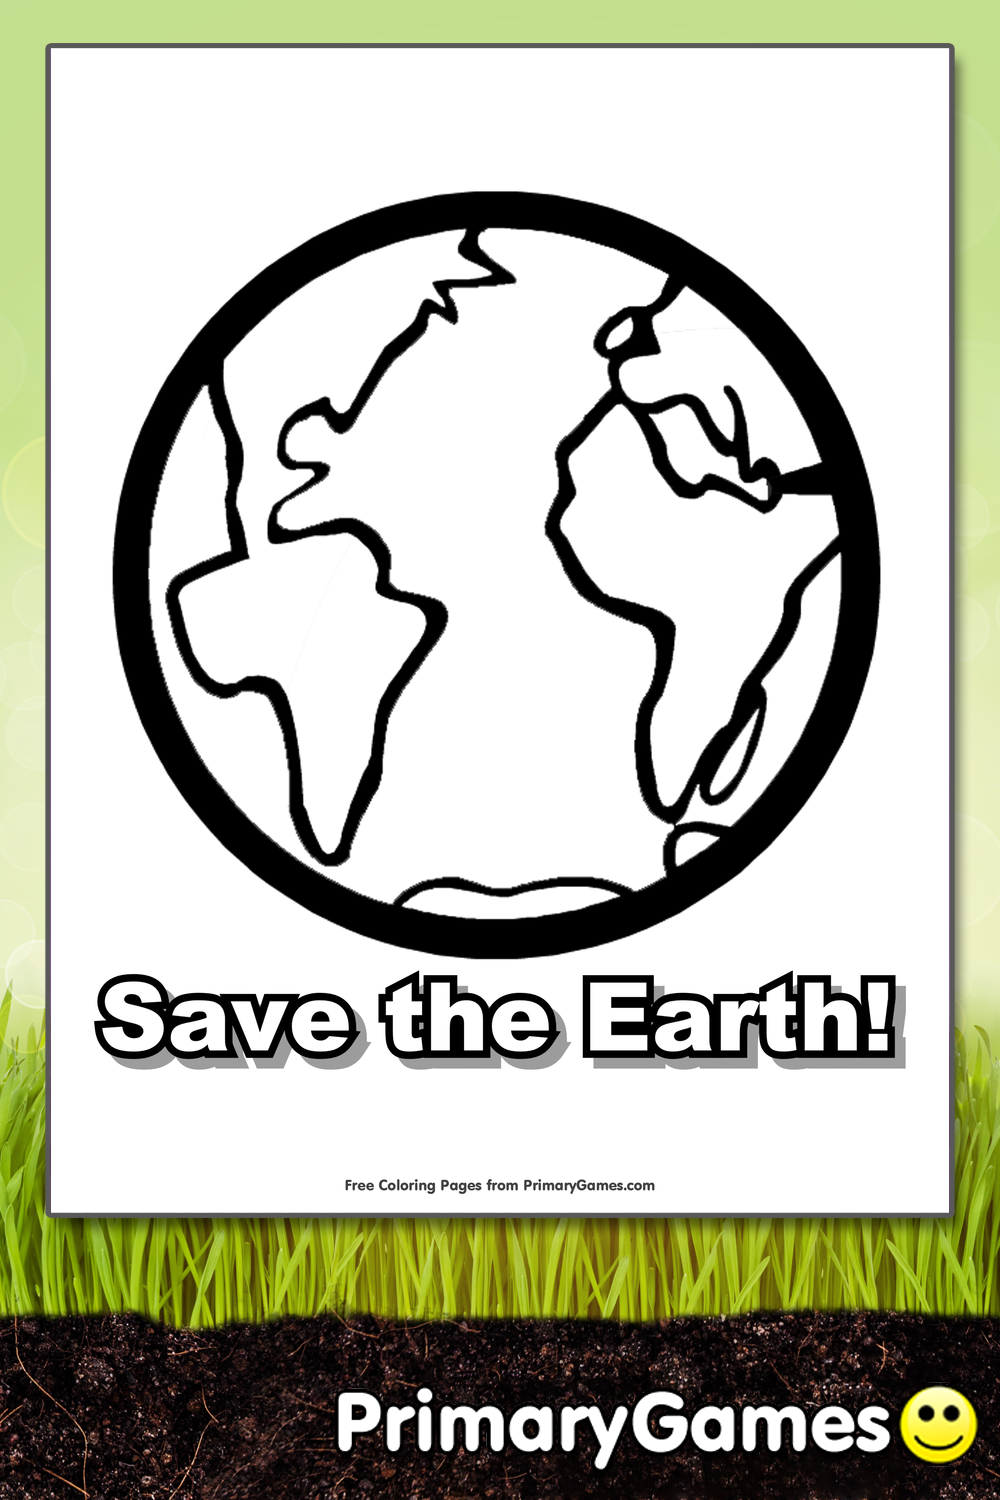 Earth Day Coloring Pages Pdf : Save the earth coloring page printable day